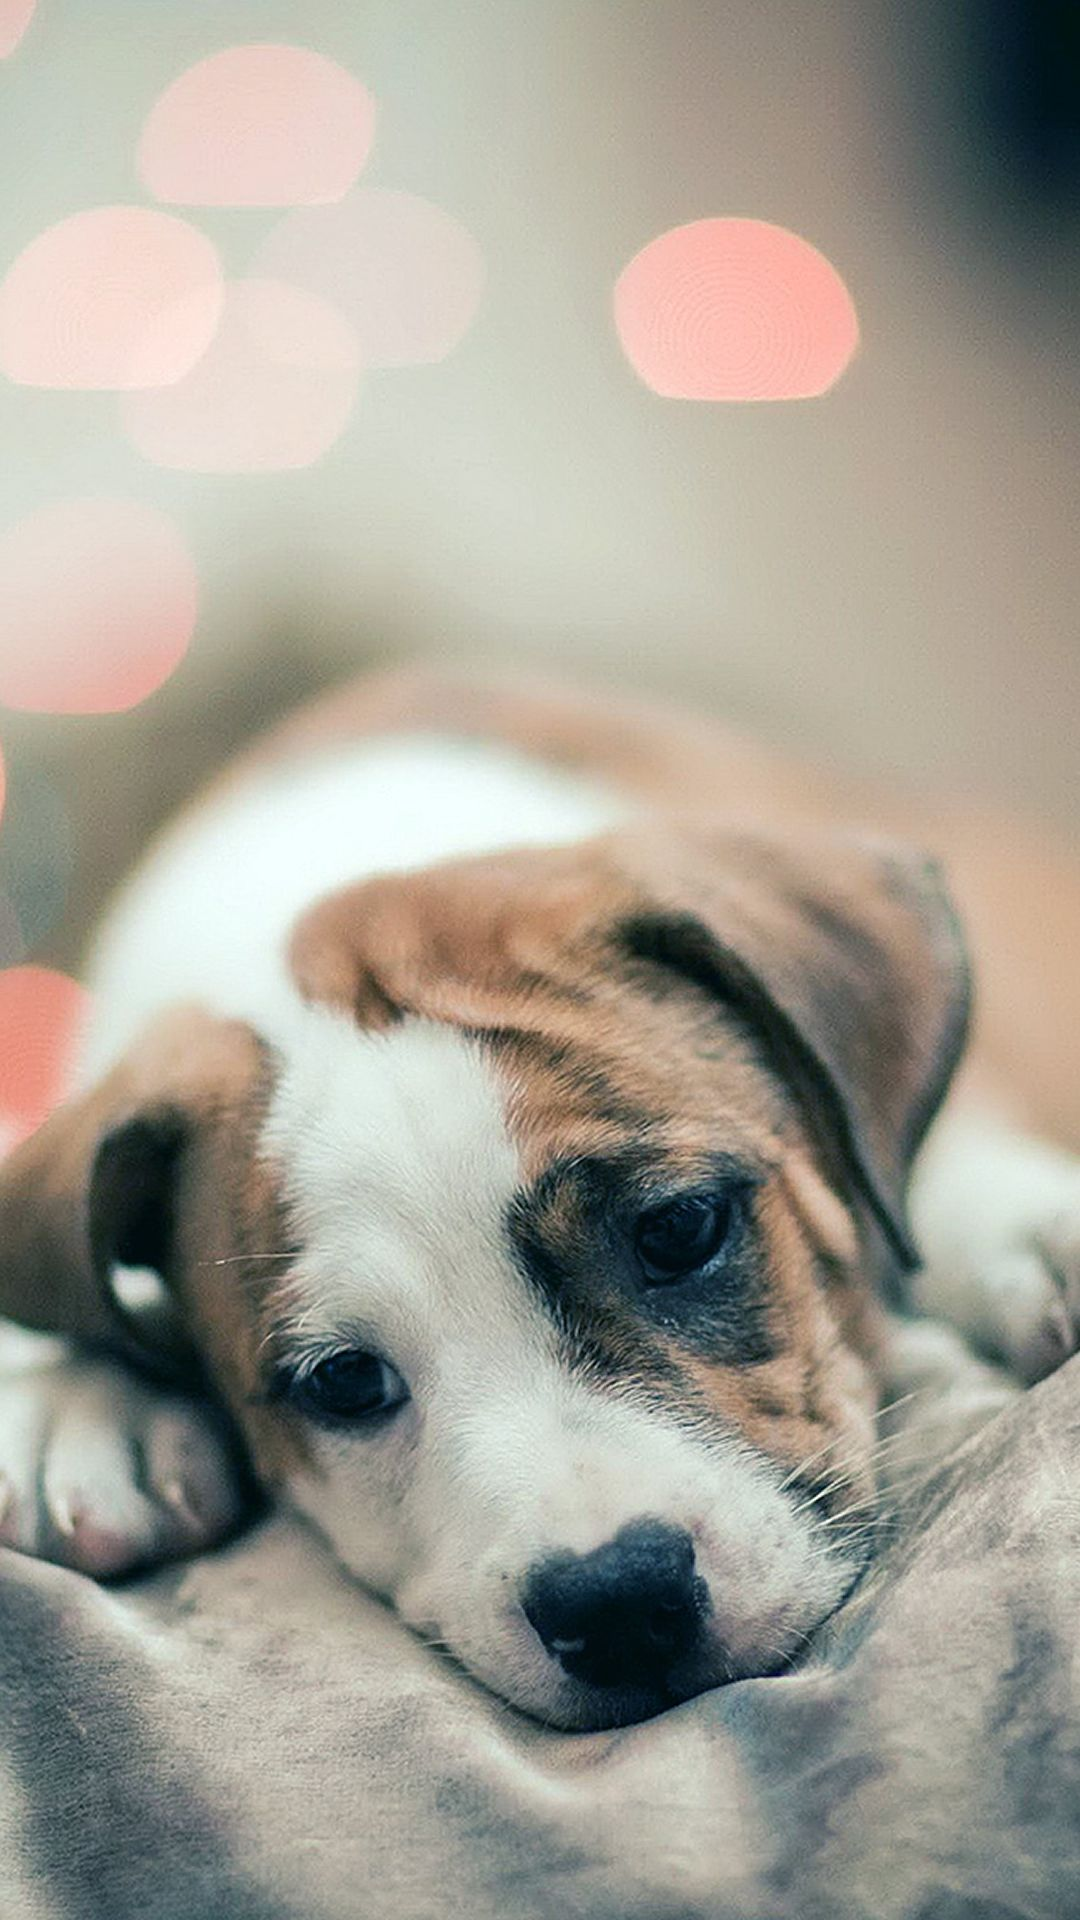 Wallpaper iphone sad - 60 Cute Animals Iphone Wallpapers You Would Love To Download